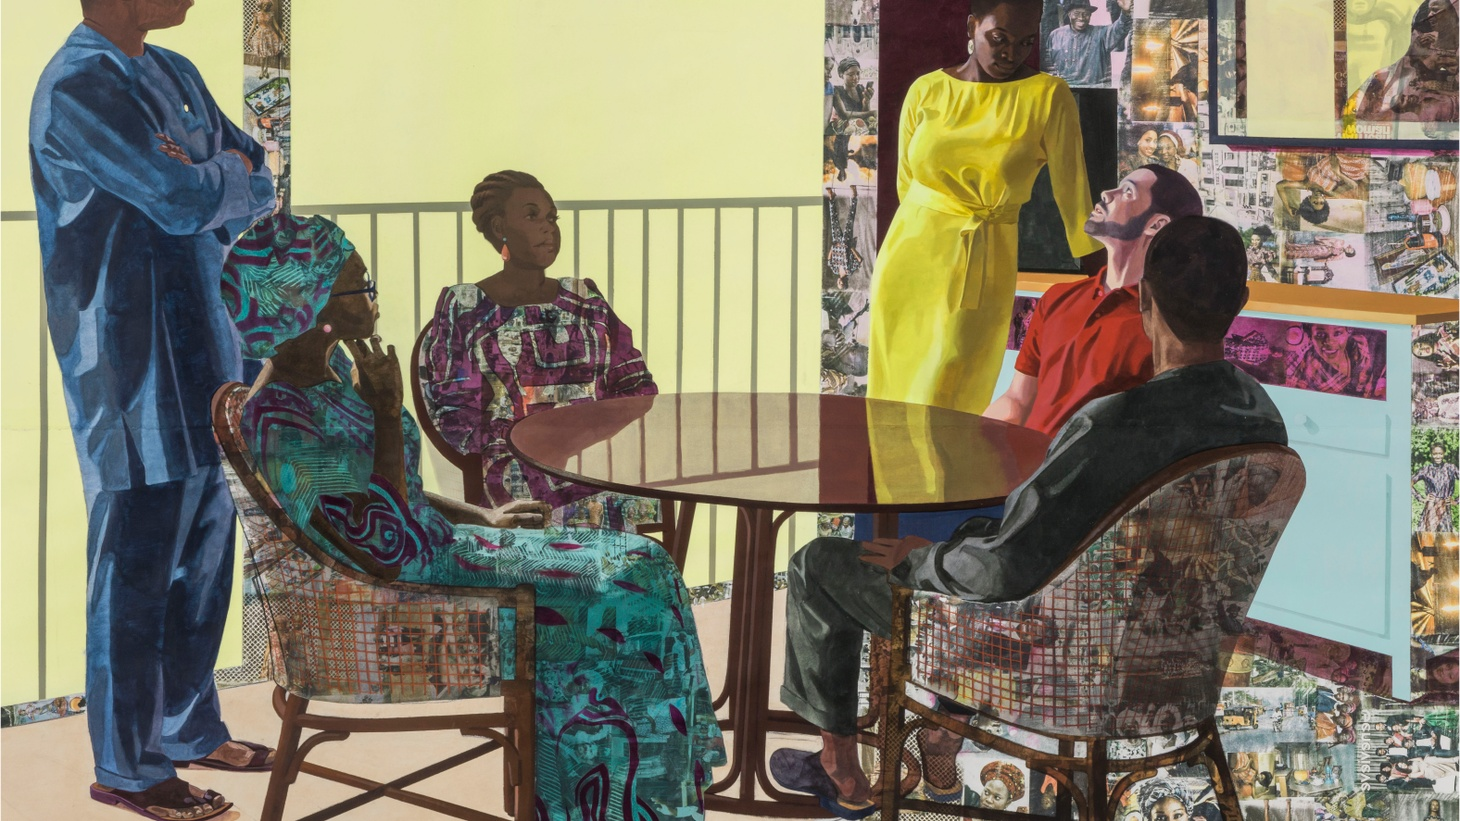 Njideka Akunyili Crosby is one of the most sought-after young painters in the art world right now. She won a Macarthur Genius grant. Her paintings sell for millions of dollars to private collectors and museums like LACMA and the Whitney.